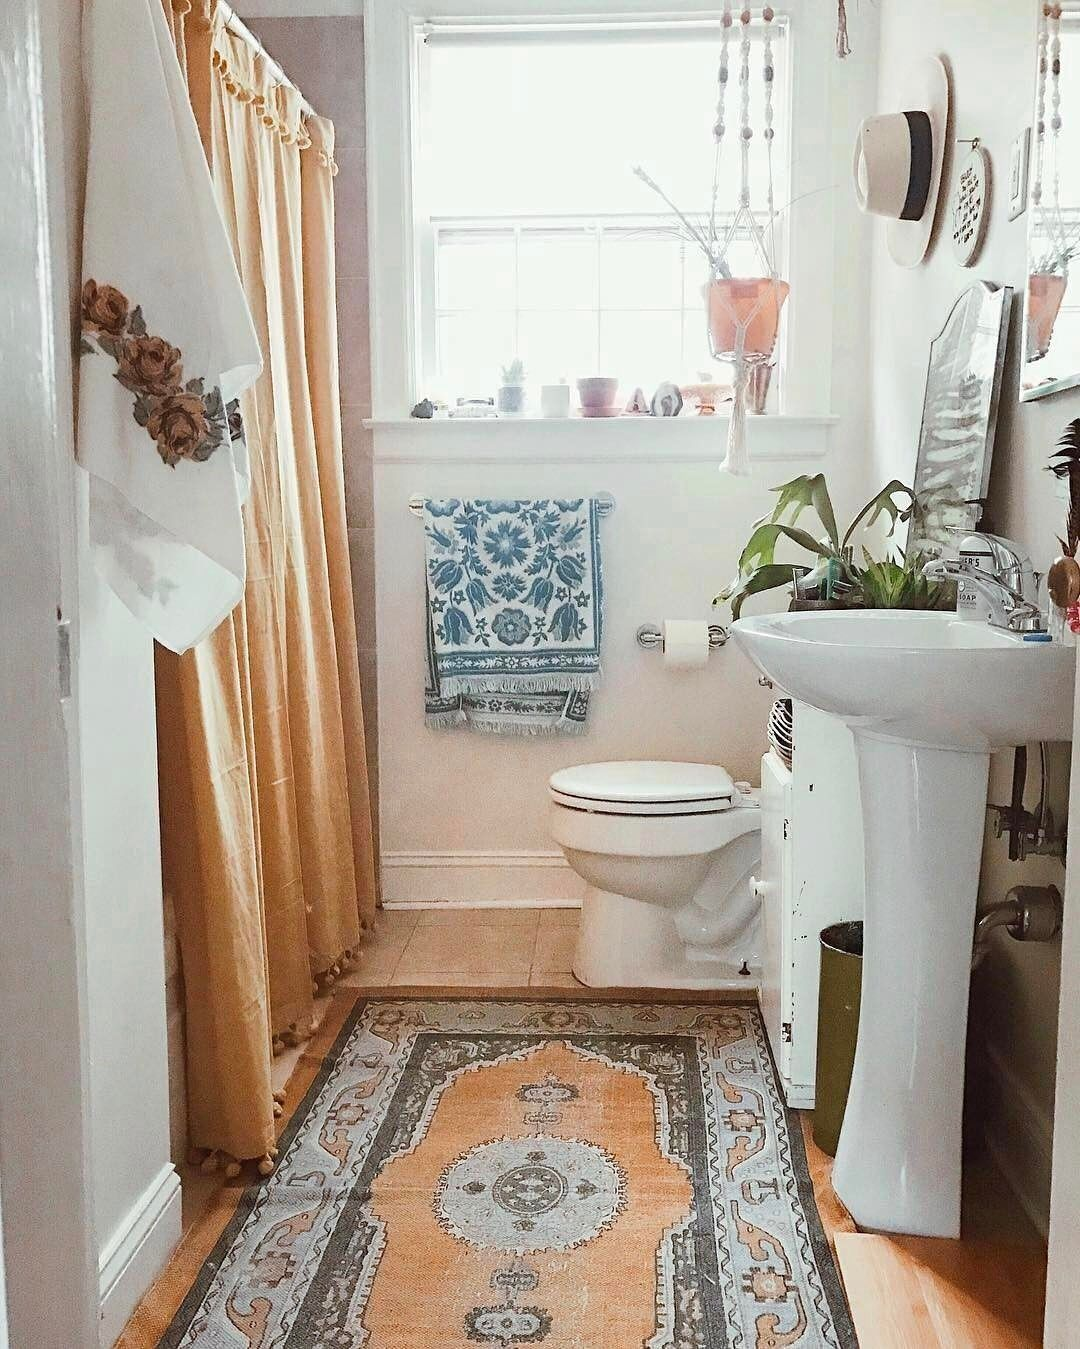 Badezimmer Im Bohemian Stile Urban Outfitters Photos And Videos